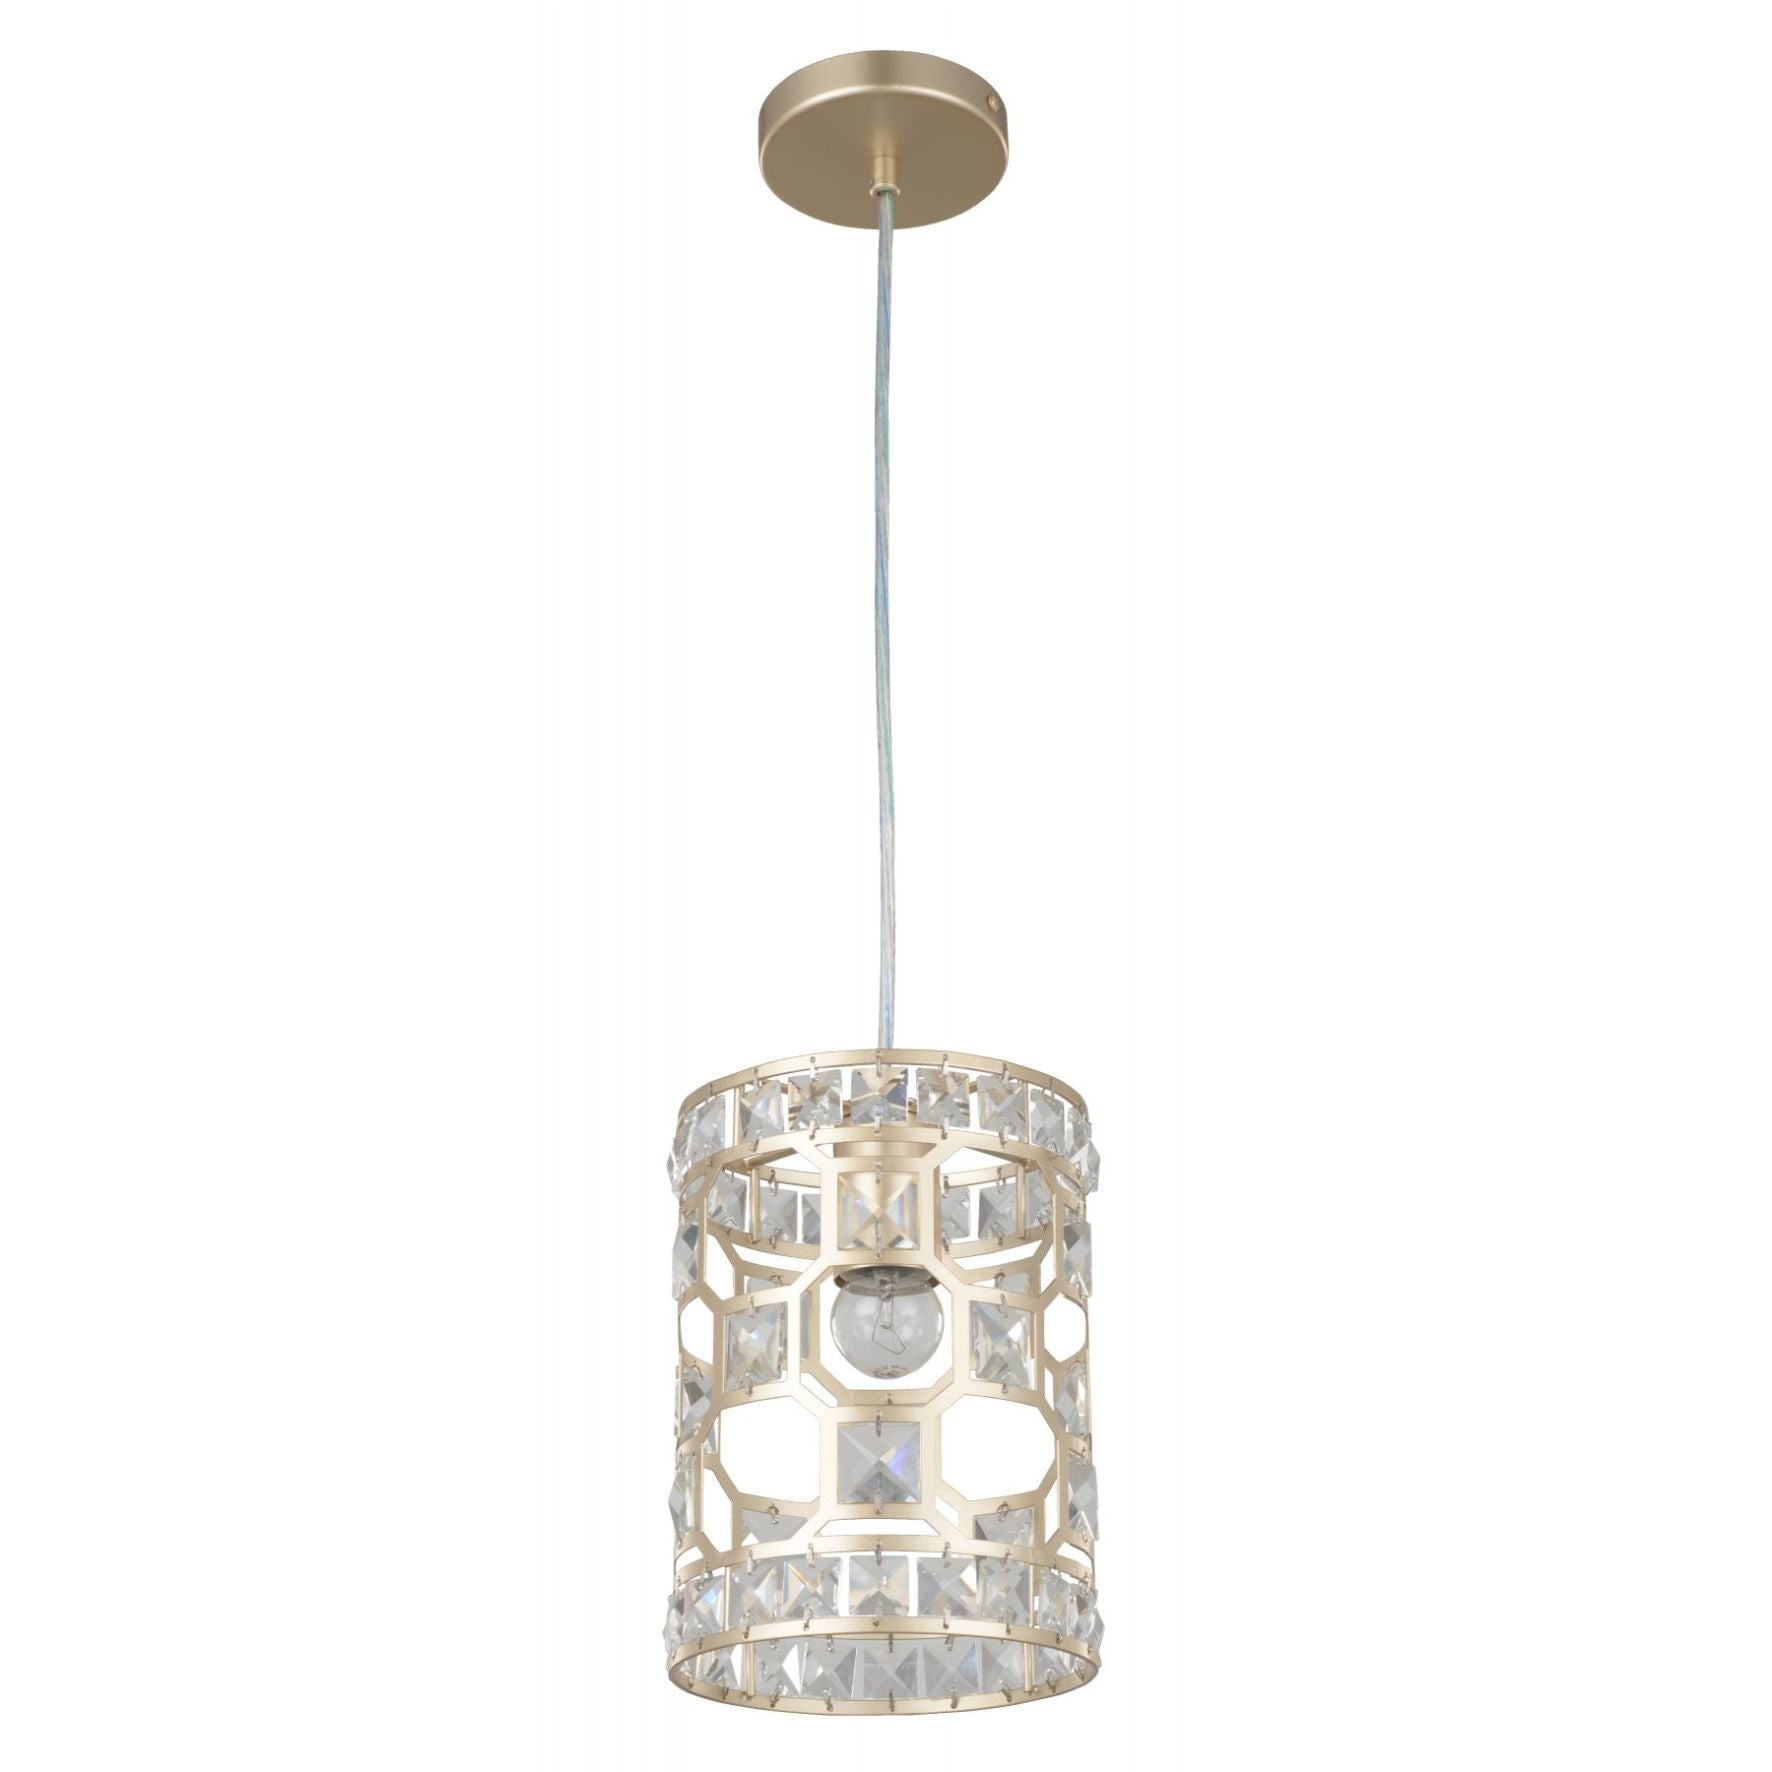 Magnalux Diana 1 Light Crystal Pendant Champagne Gold